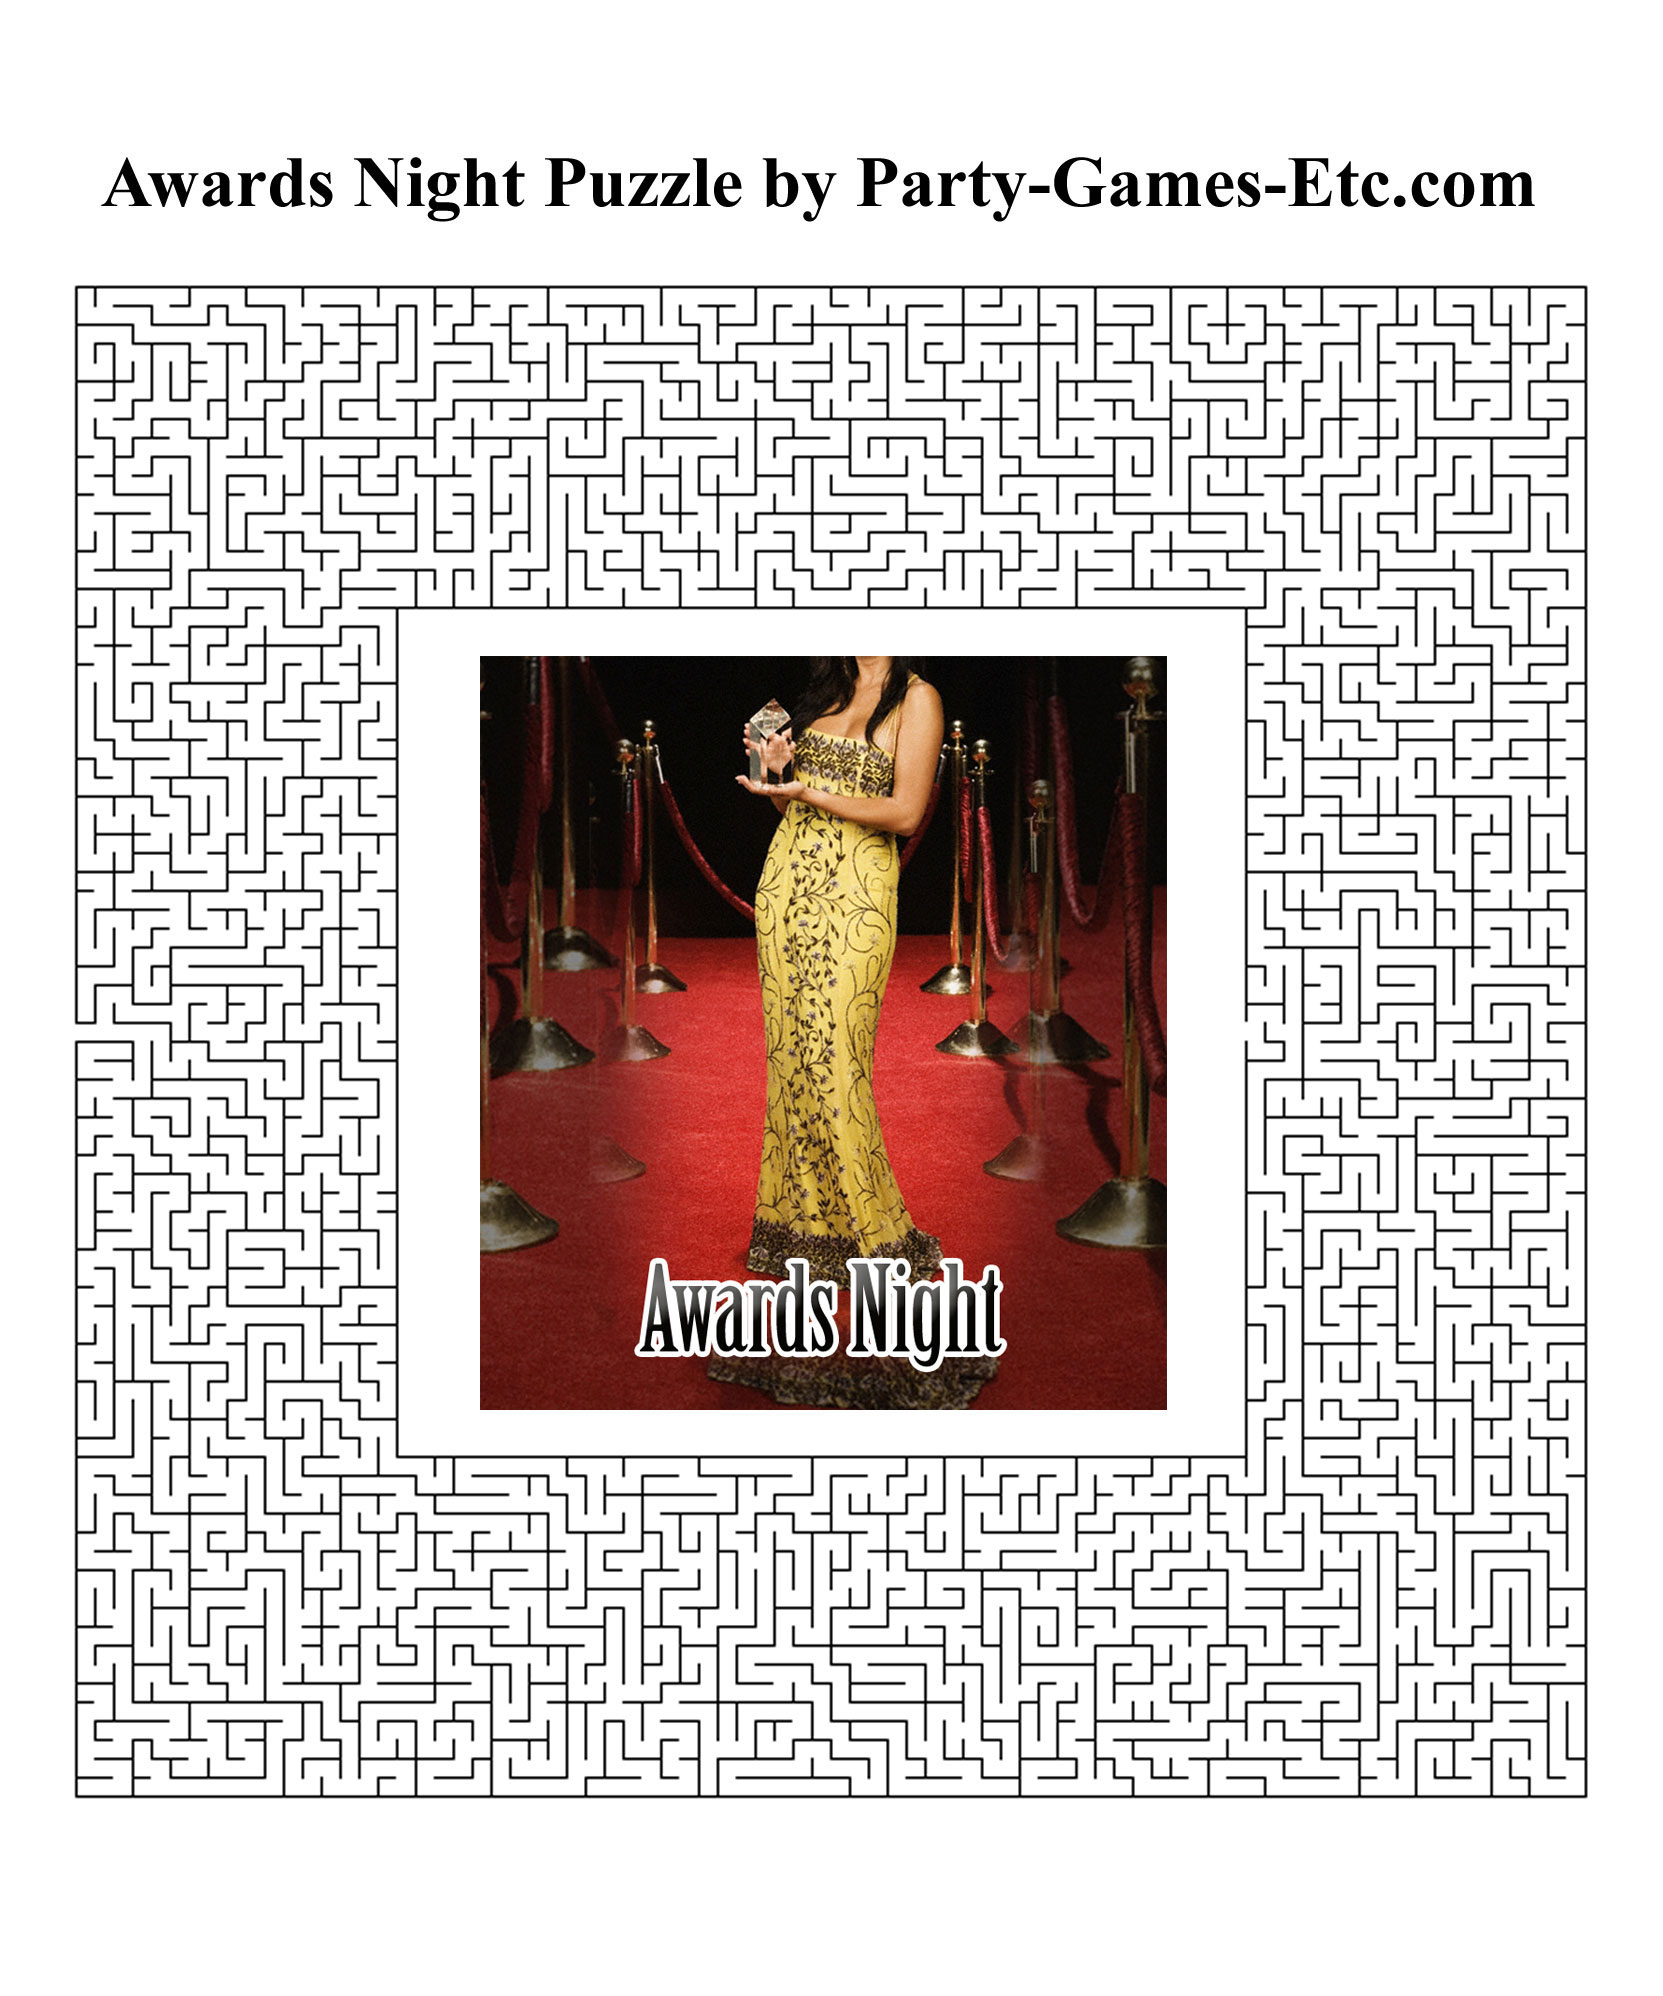 Free Printable Awards Night Party Game and Pen and Paper Activity